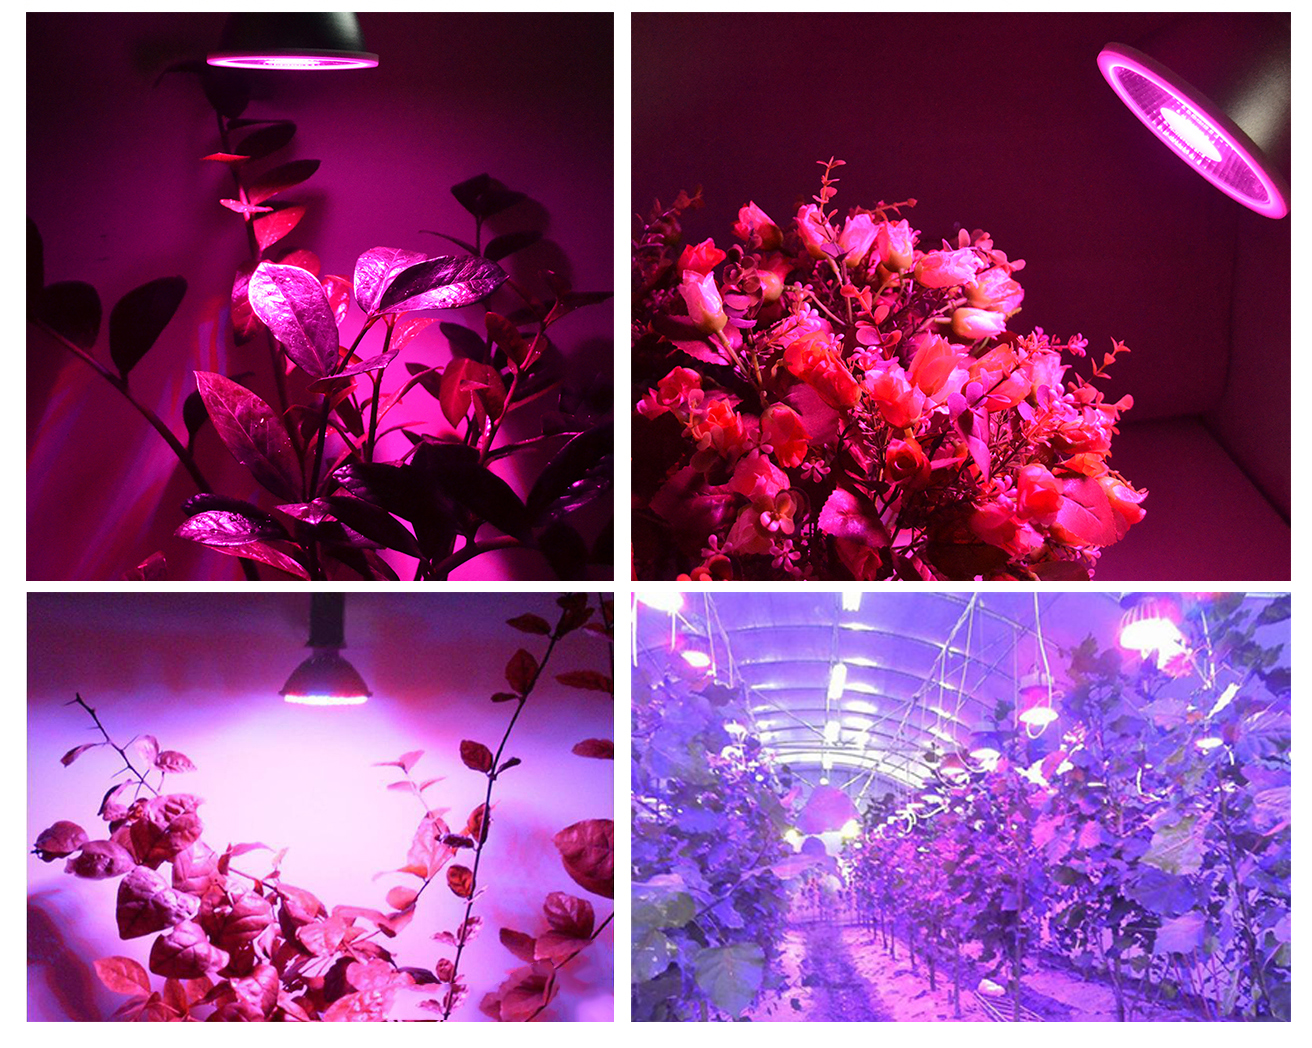 PAR30 garden plants E27 15W grow led light for greenhouse par38 led